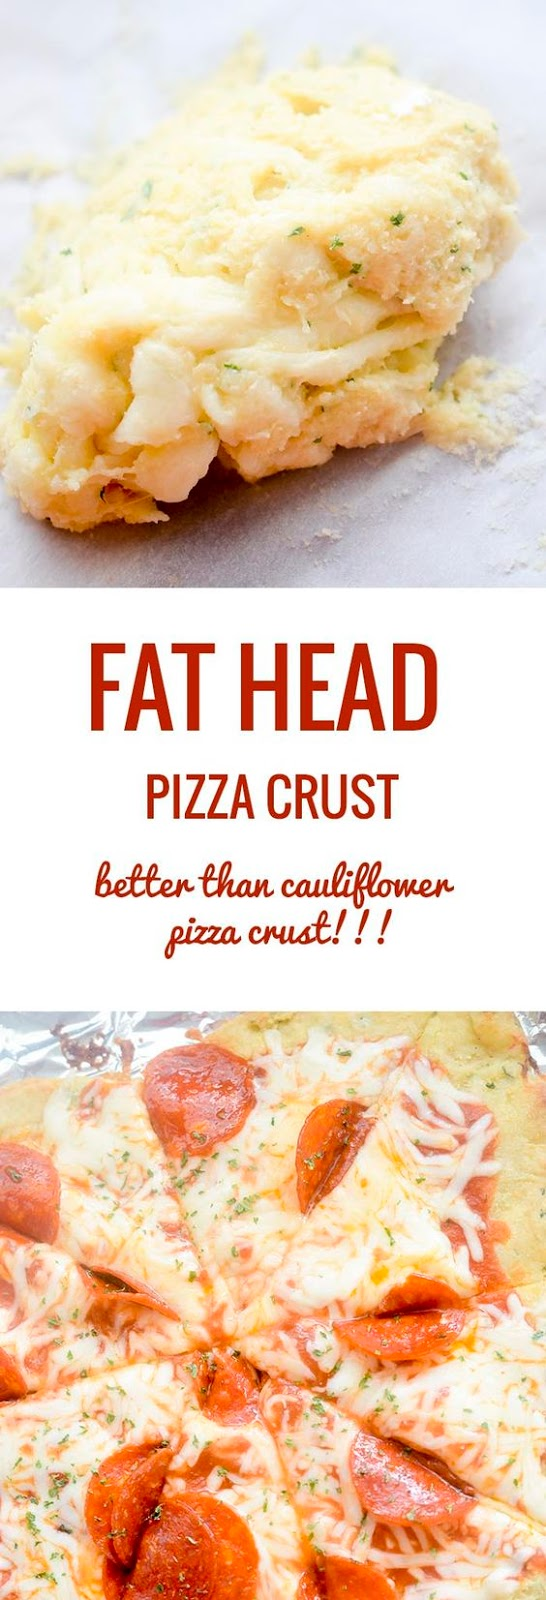 FAT HEAD PIZZA CRUST